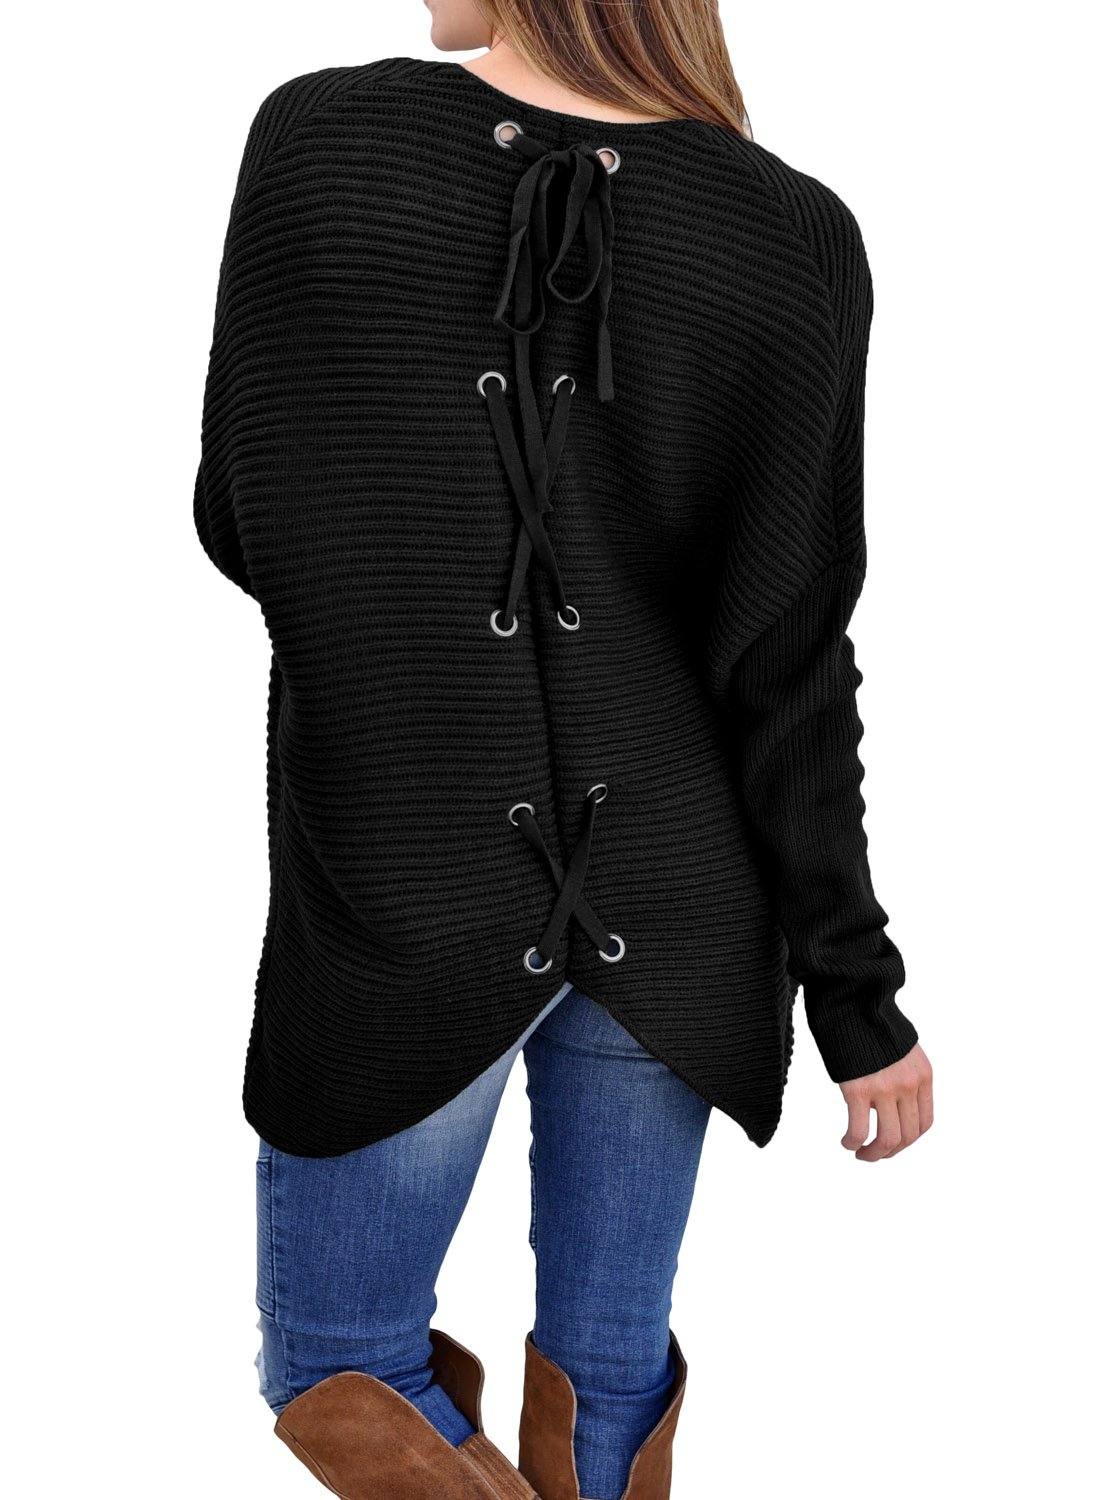 Elapsy Womens Casual Ribbed Knit Open Front Cardigans Lace up Back Outwear Sweater Knitwear WQ27855